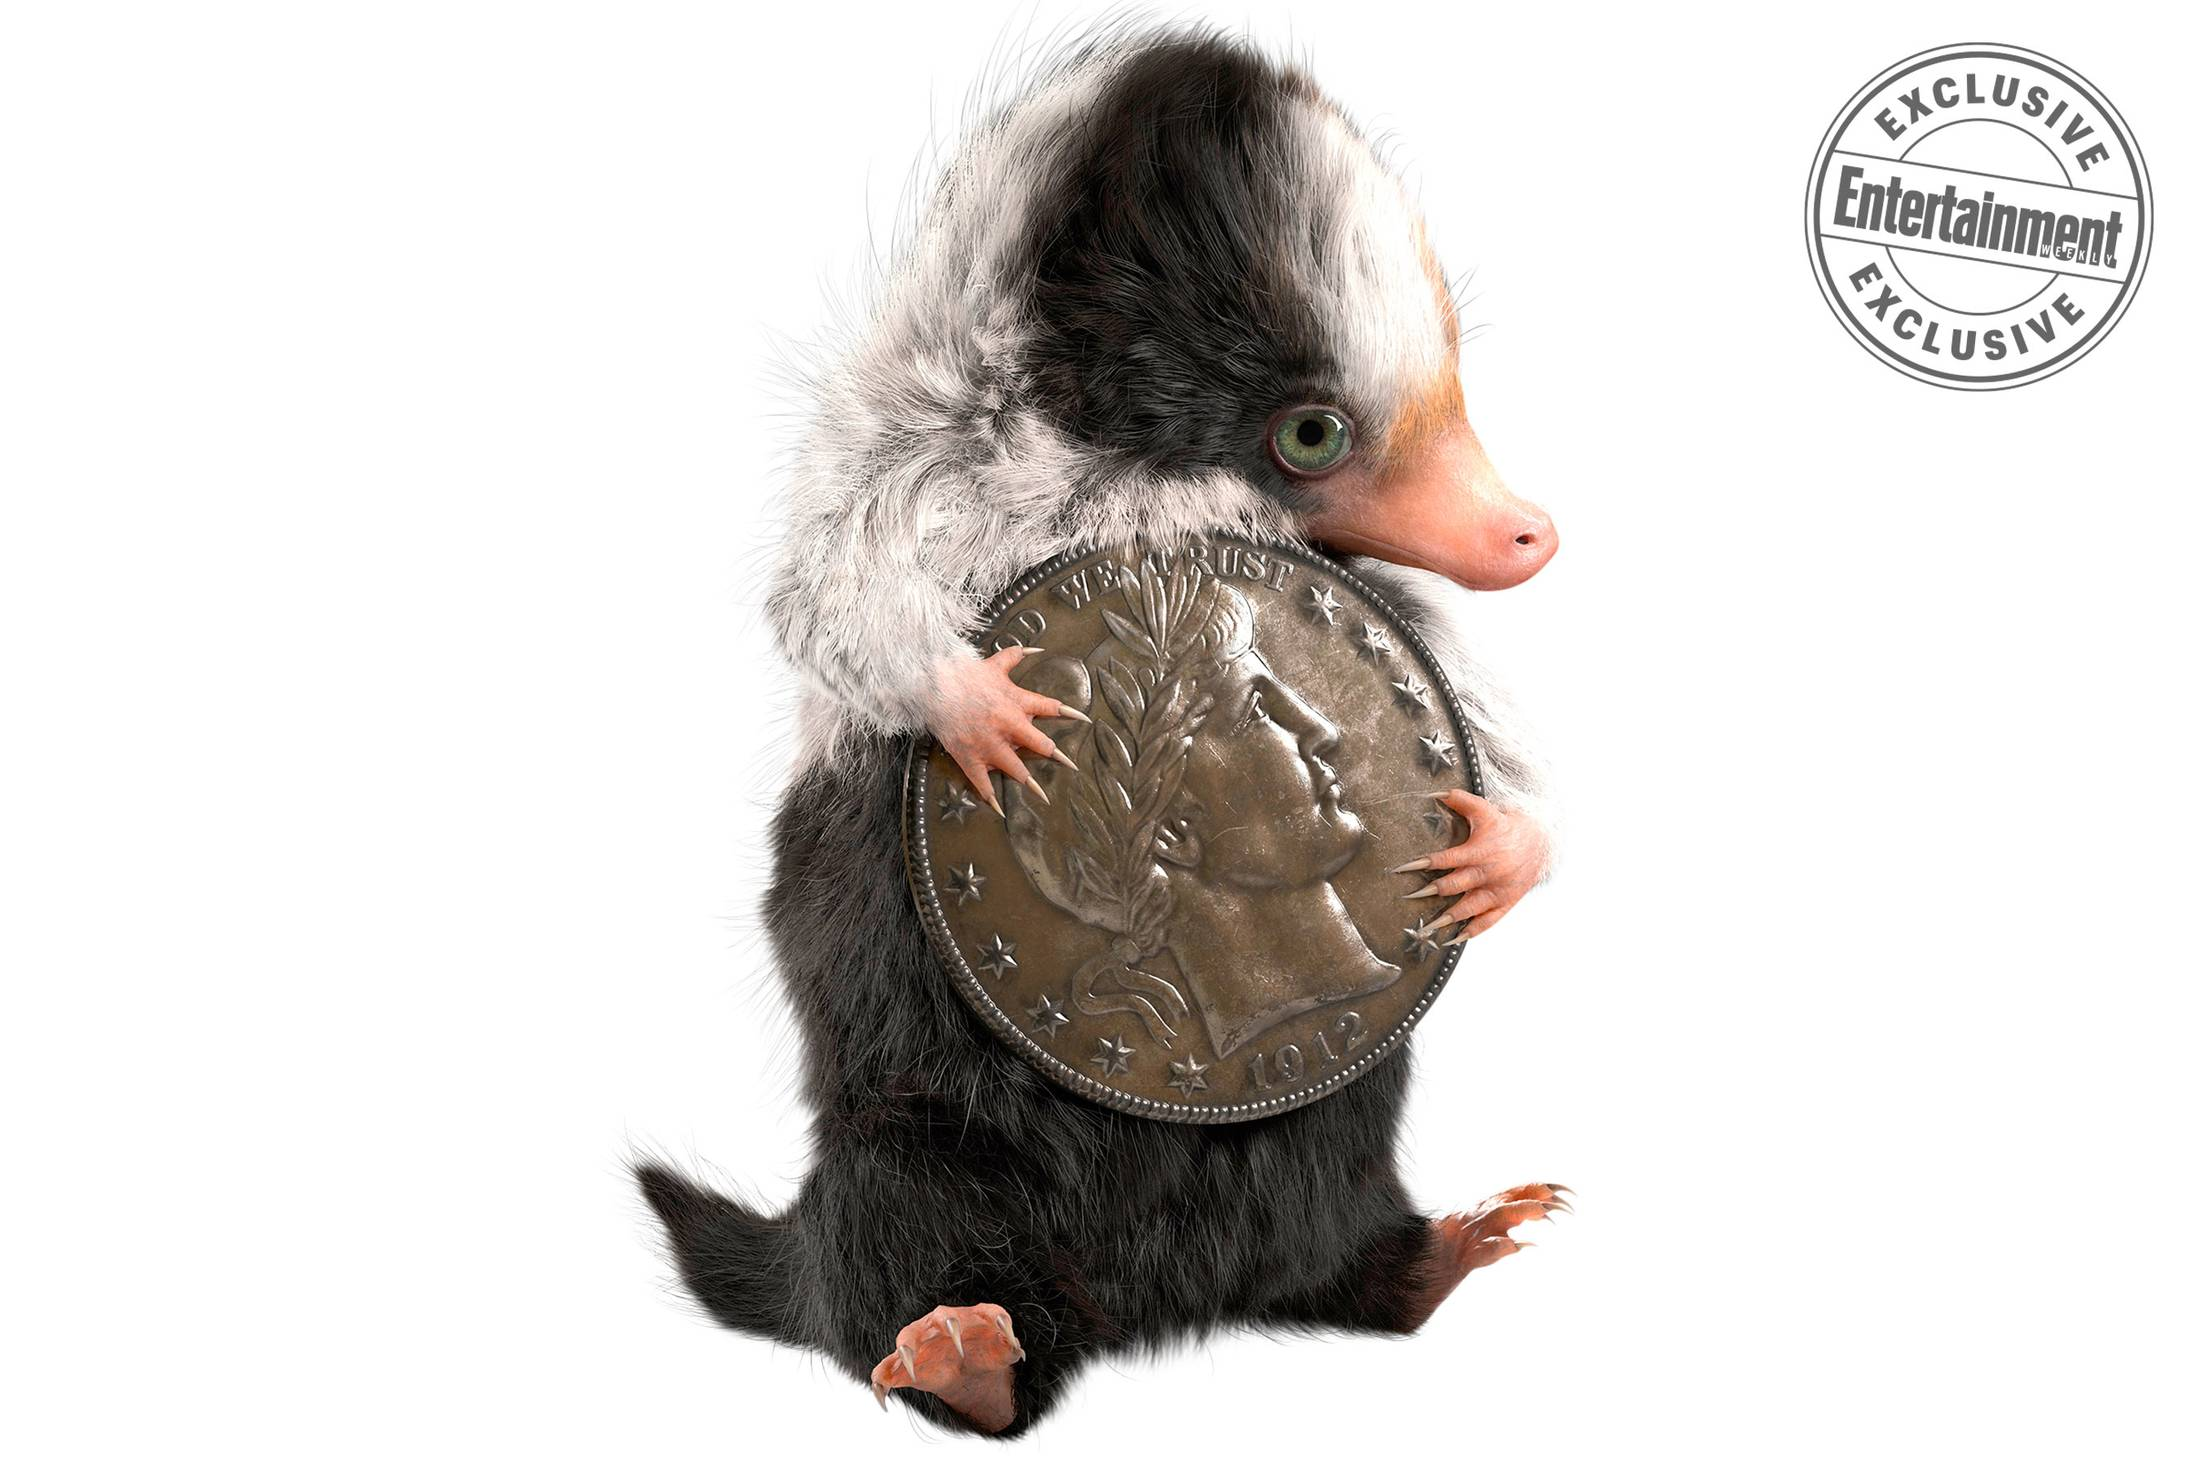 """Fantastic Beasts: The Crimes of Grindelwald"": Baby Niffler concept art"